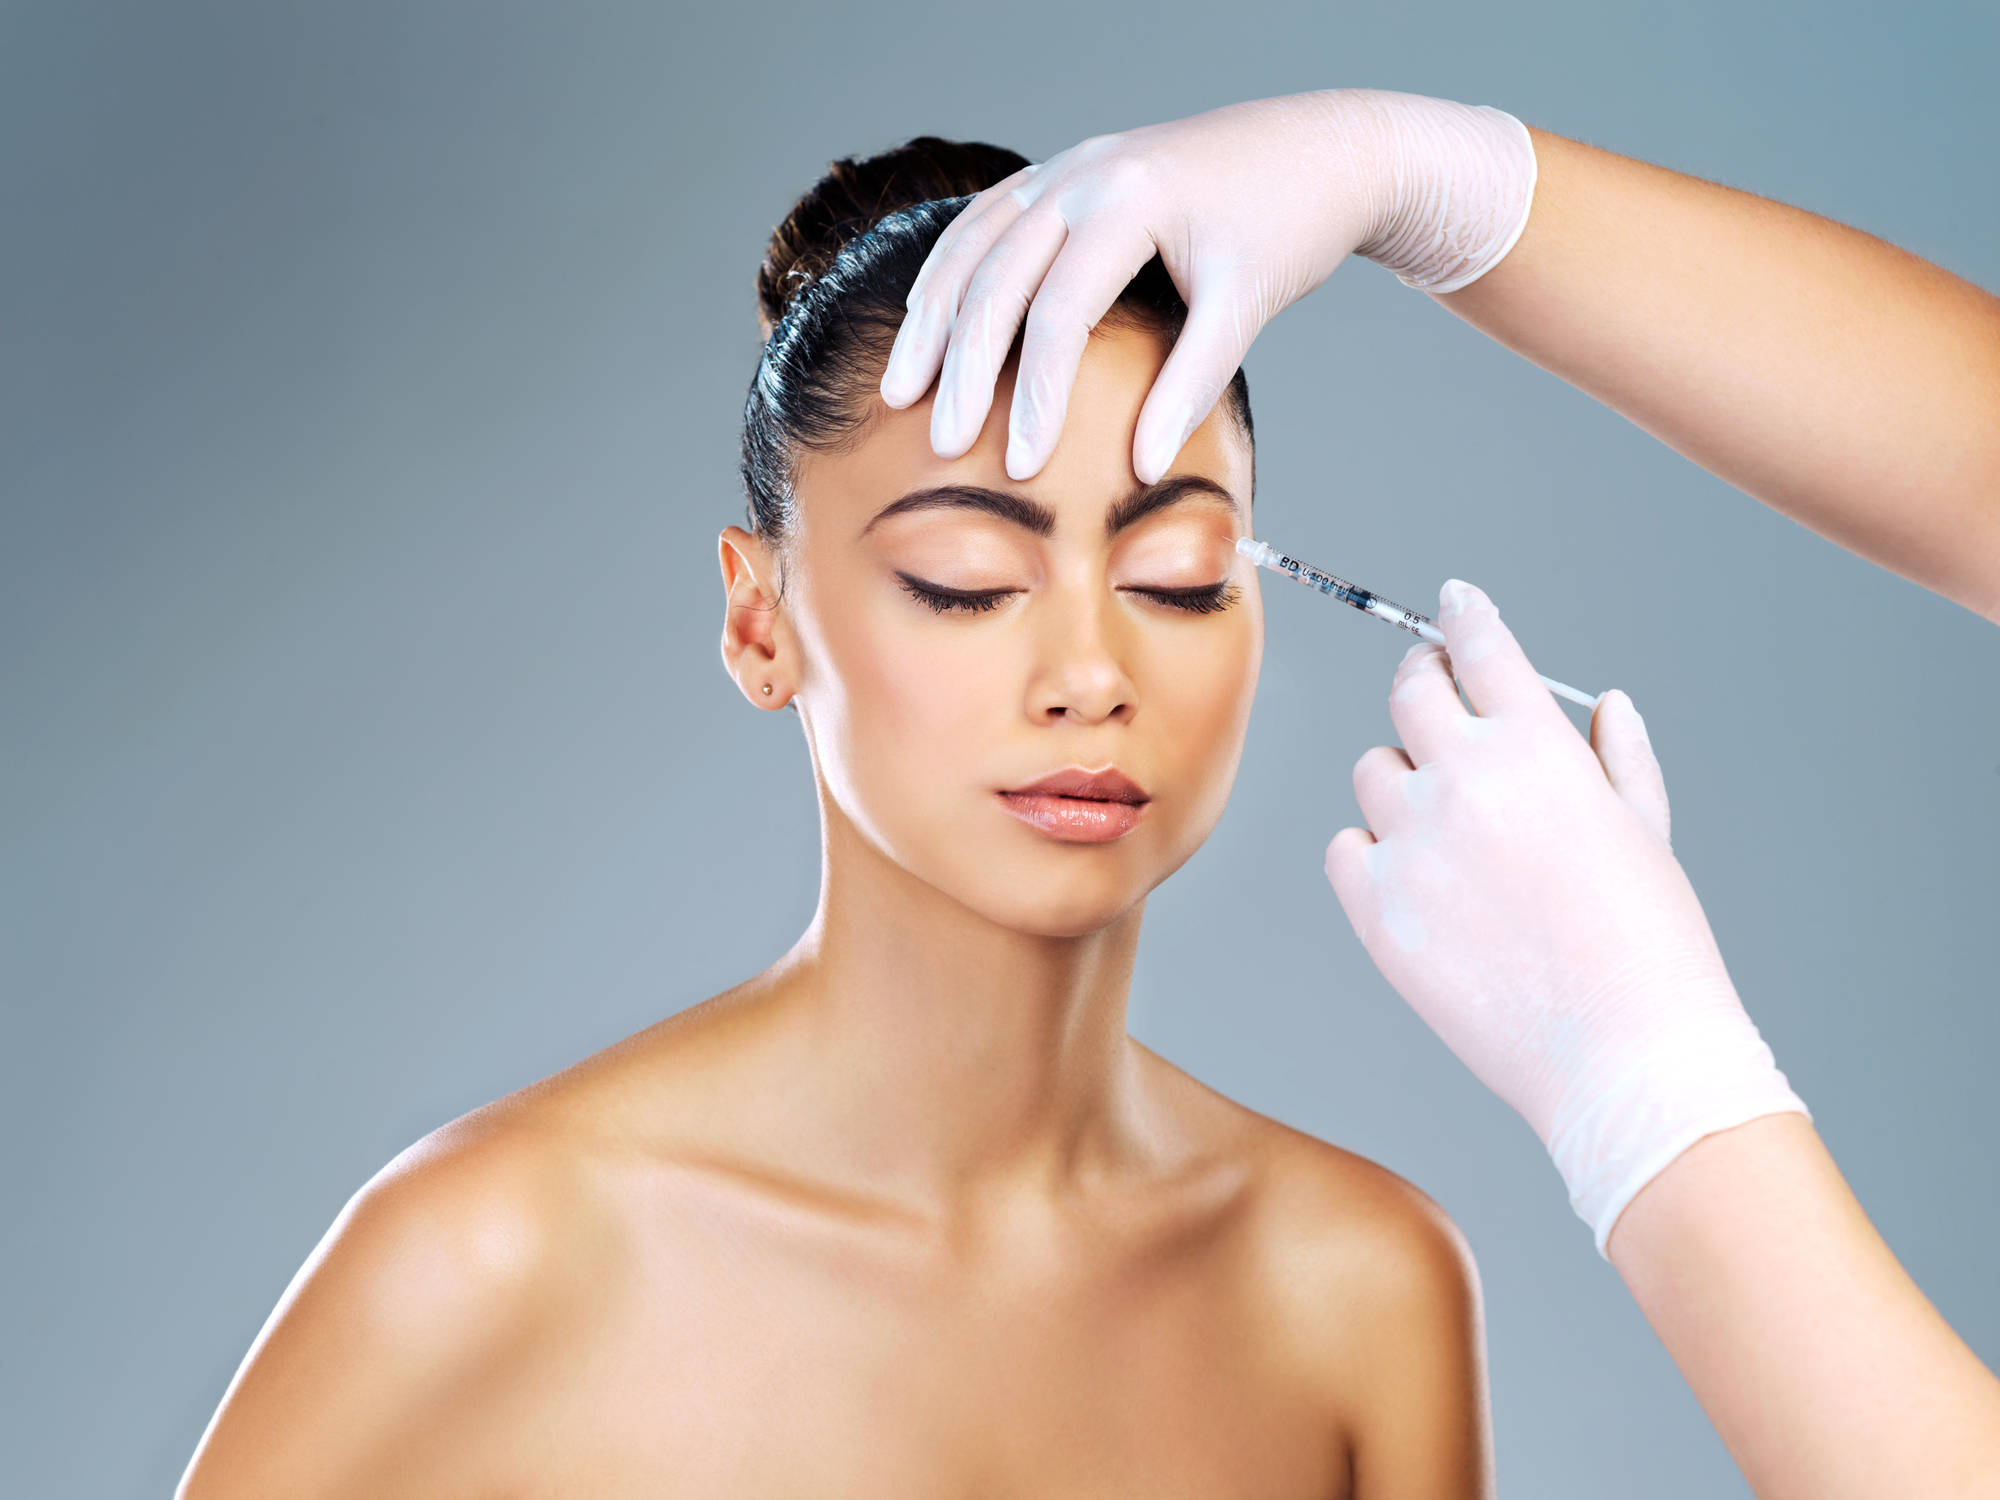 Cynthia M. Poulos MD Blog | 5 Reasons You'll Fall In Love With Botox Injections